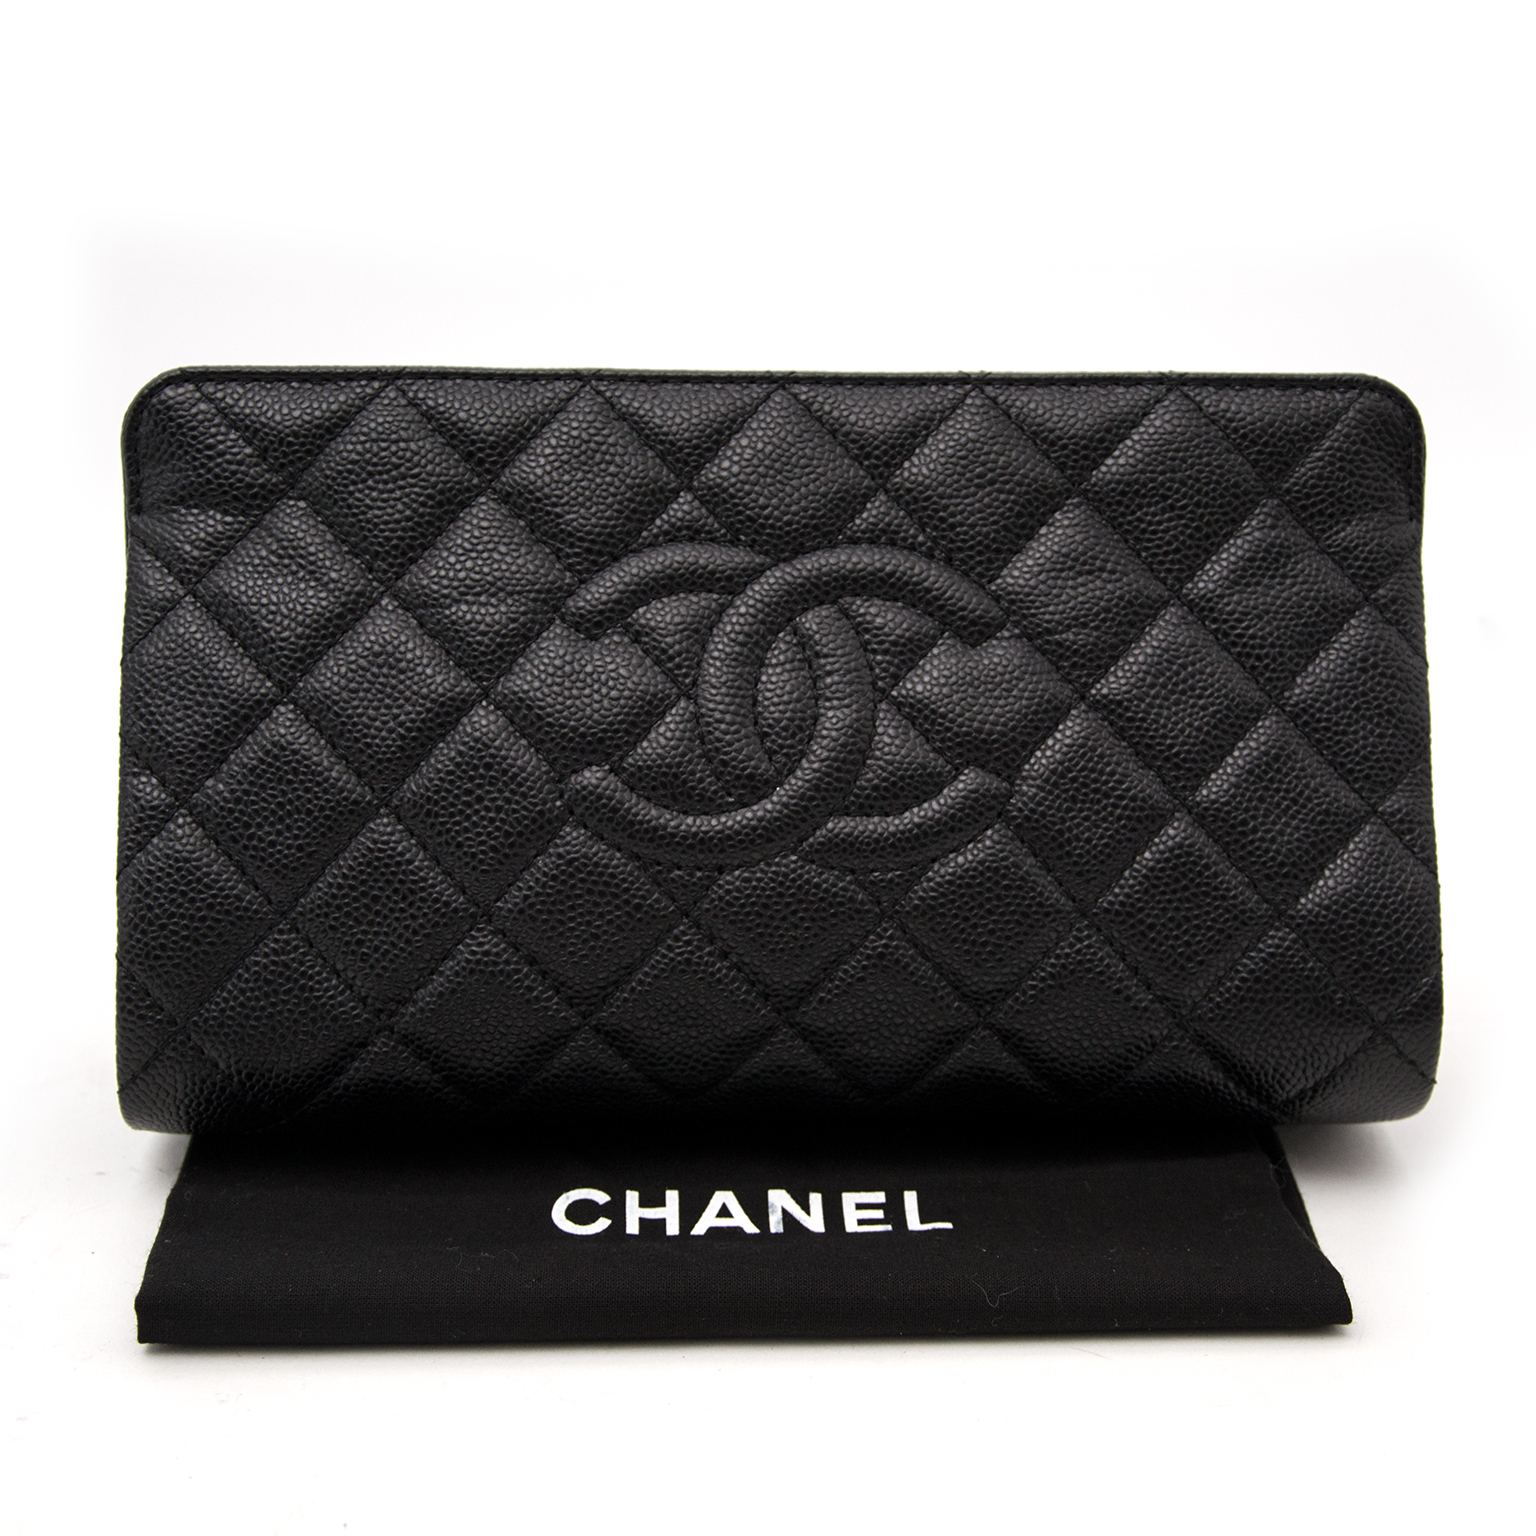 Authentic Chanel Black Caviar Quilted CC Clutch Bag at the best price 2017